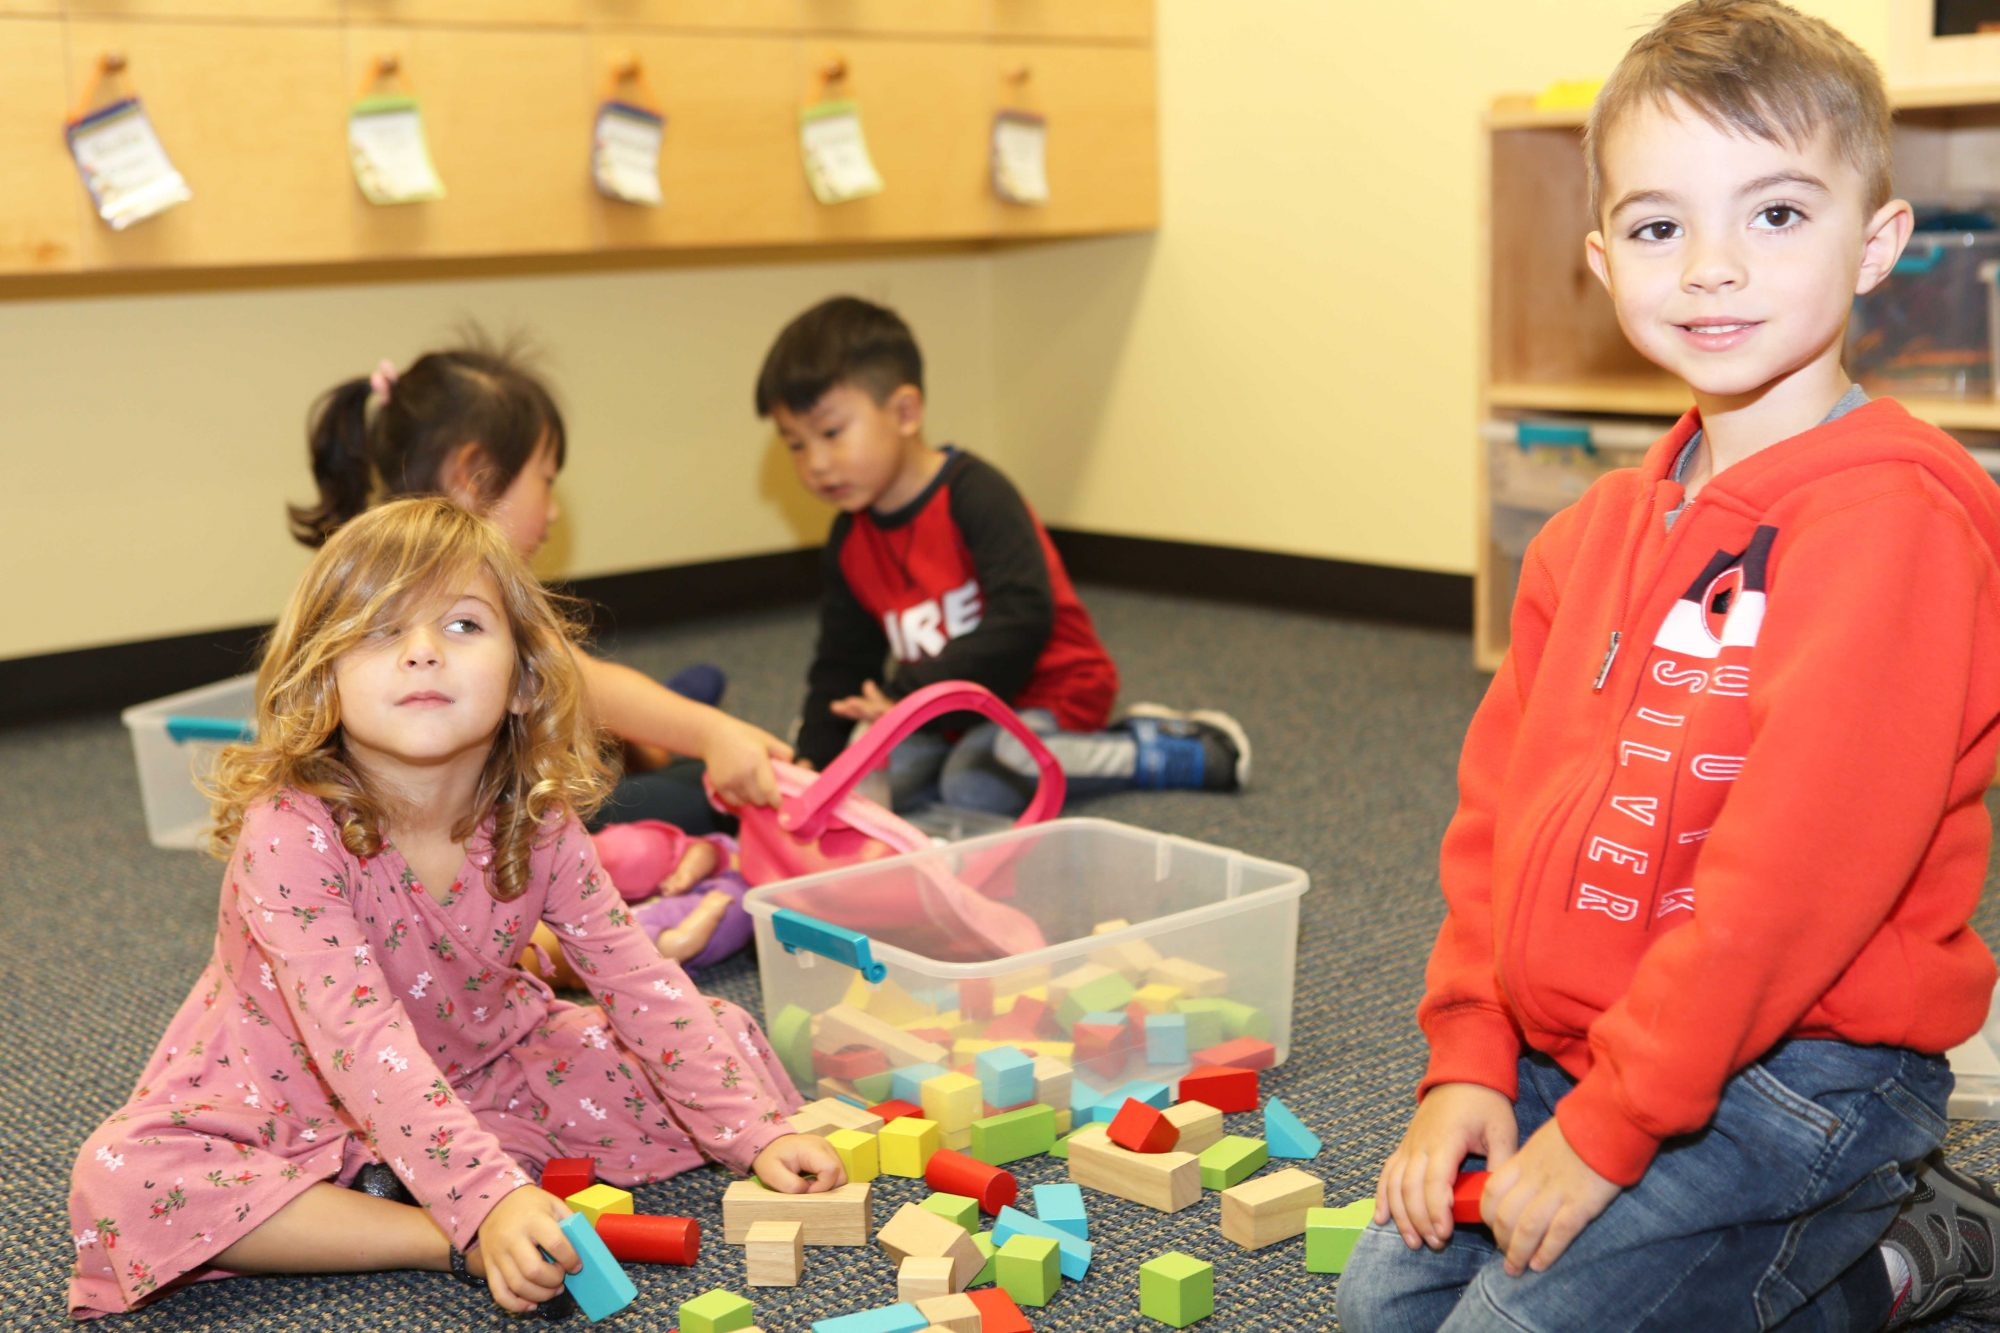 village preschool academy Junior-Pre-K